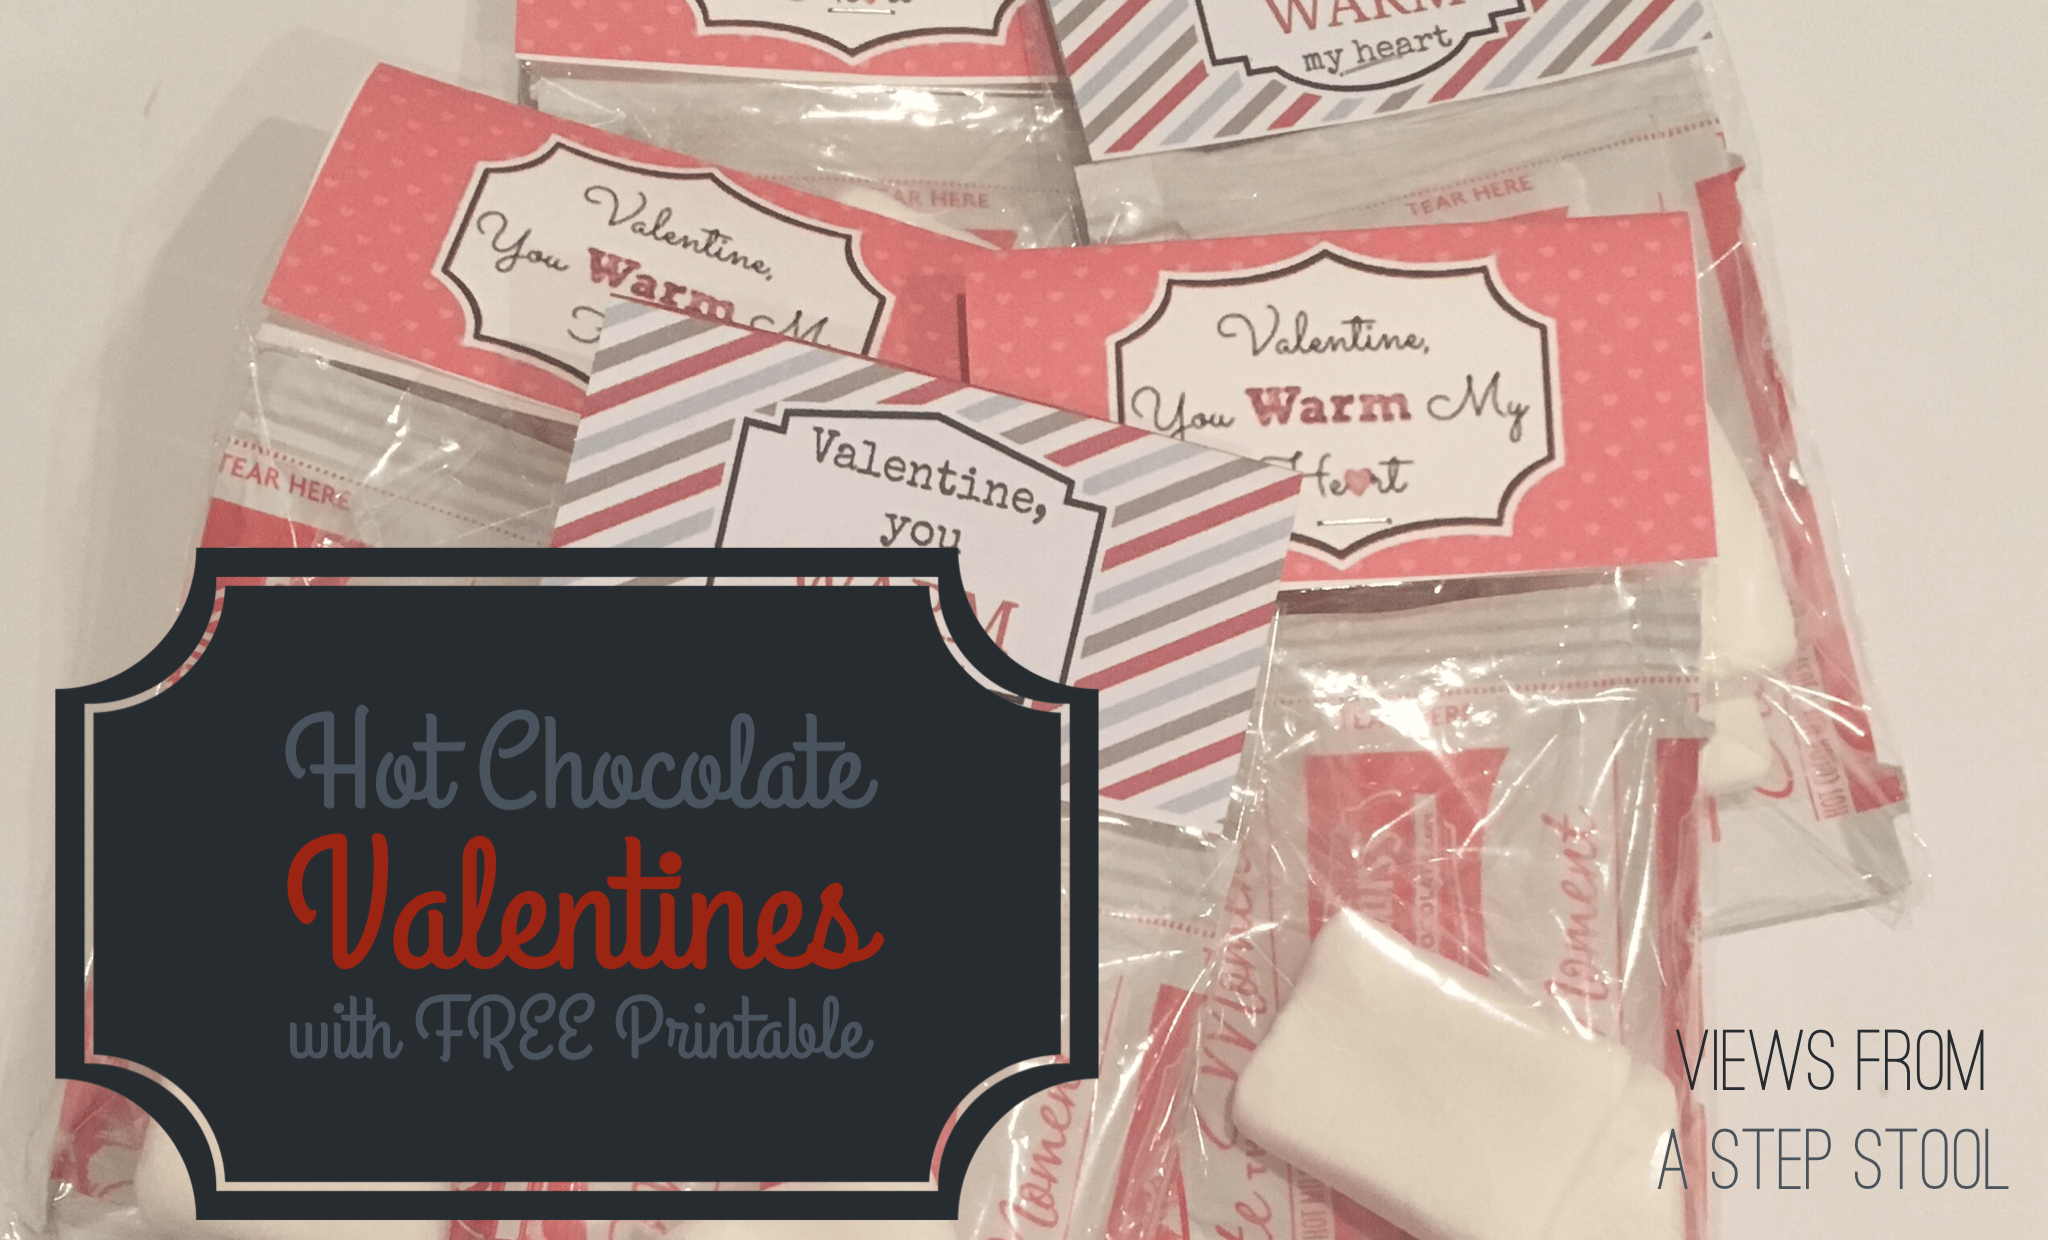 Hot Chocolate Valentine with FREE Printable